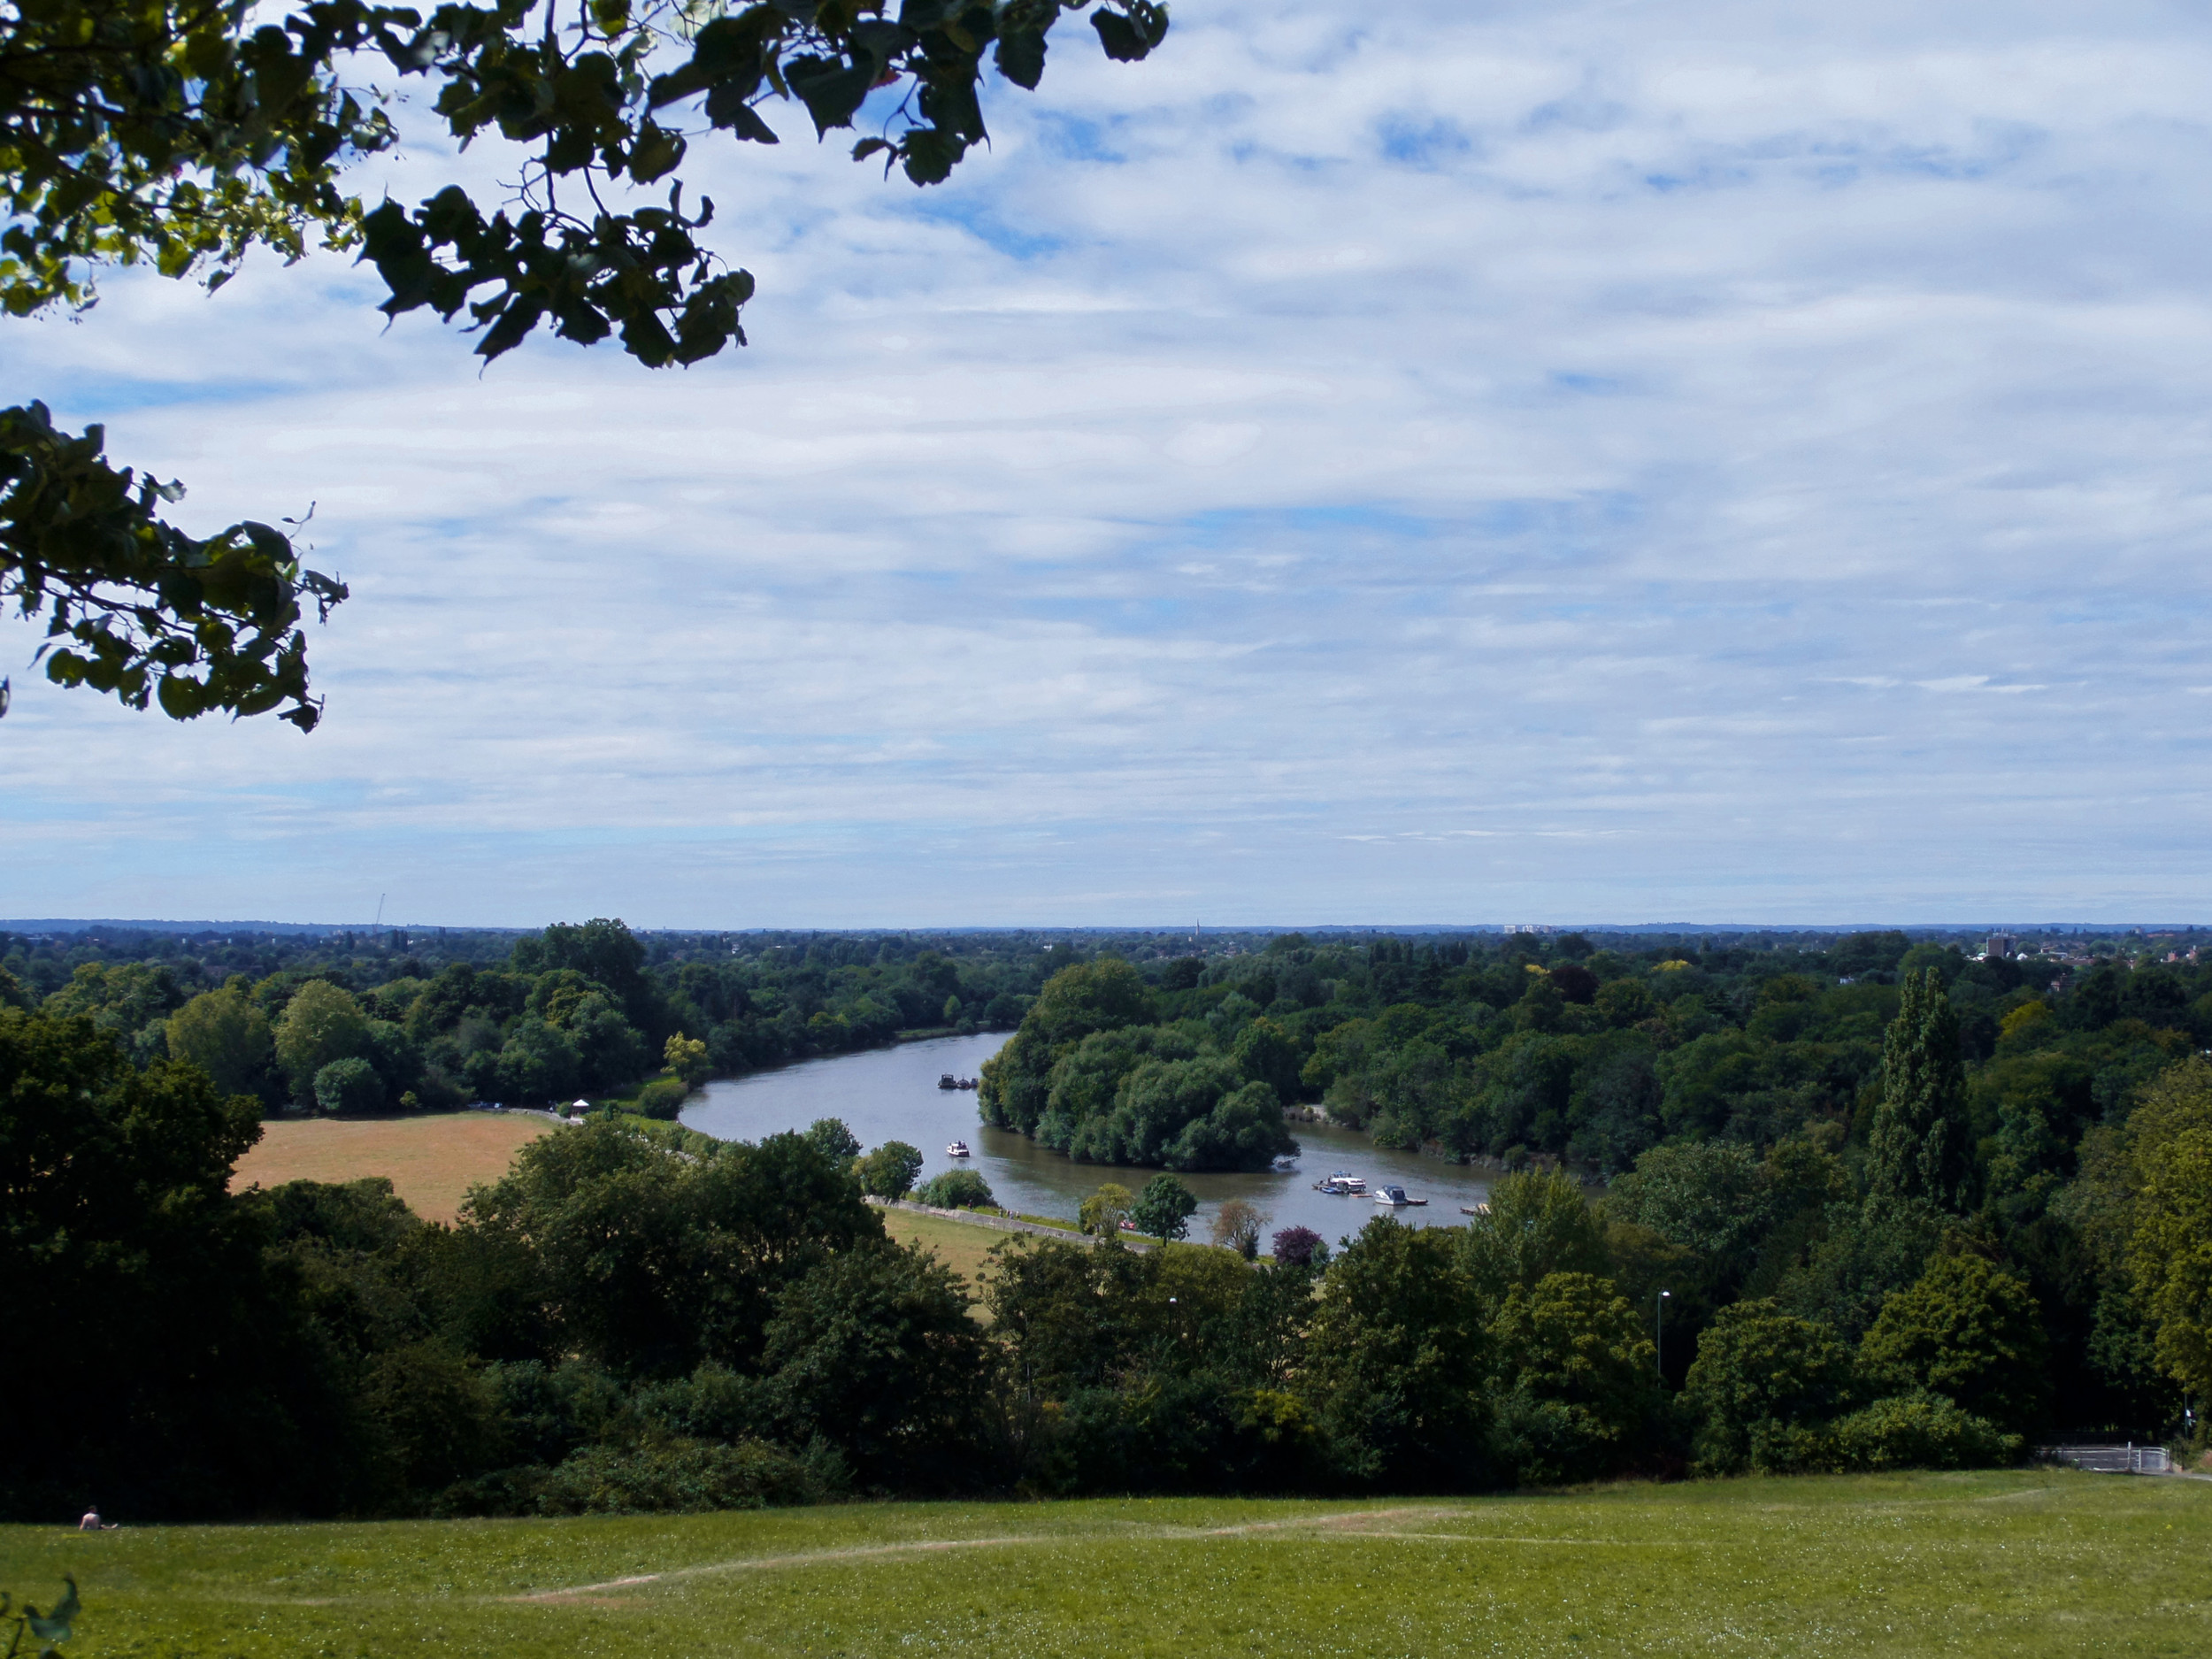 Turner's view in Richmond (own photo)